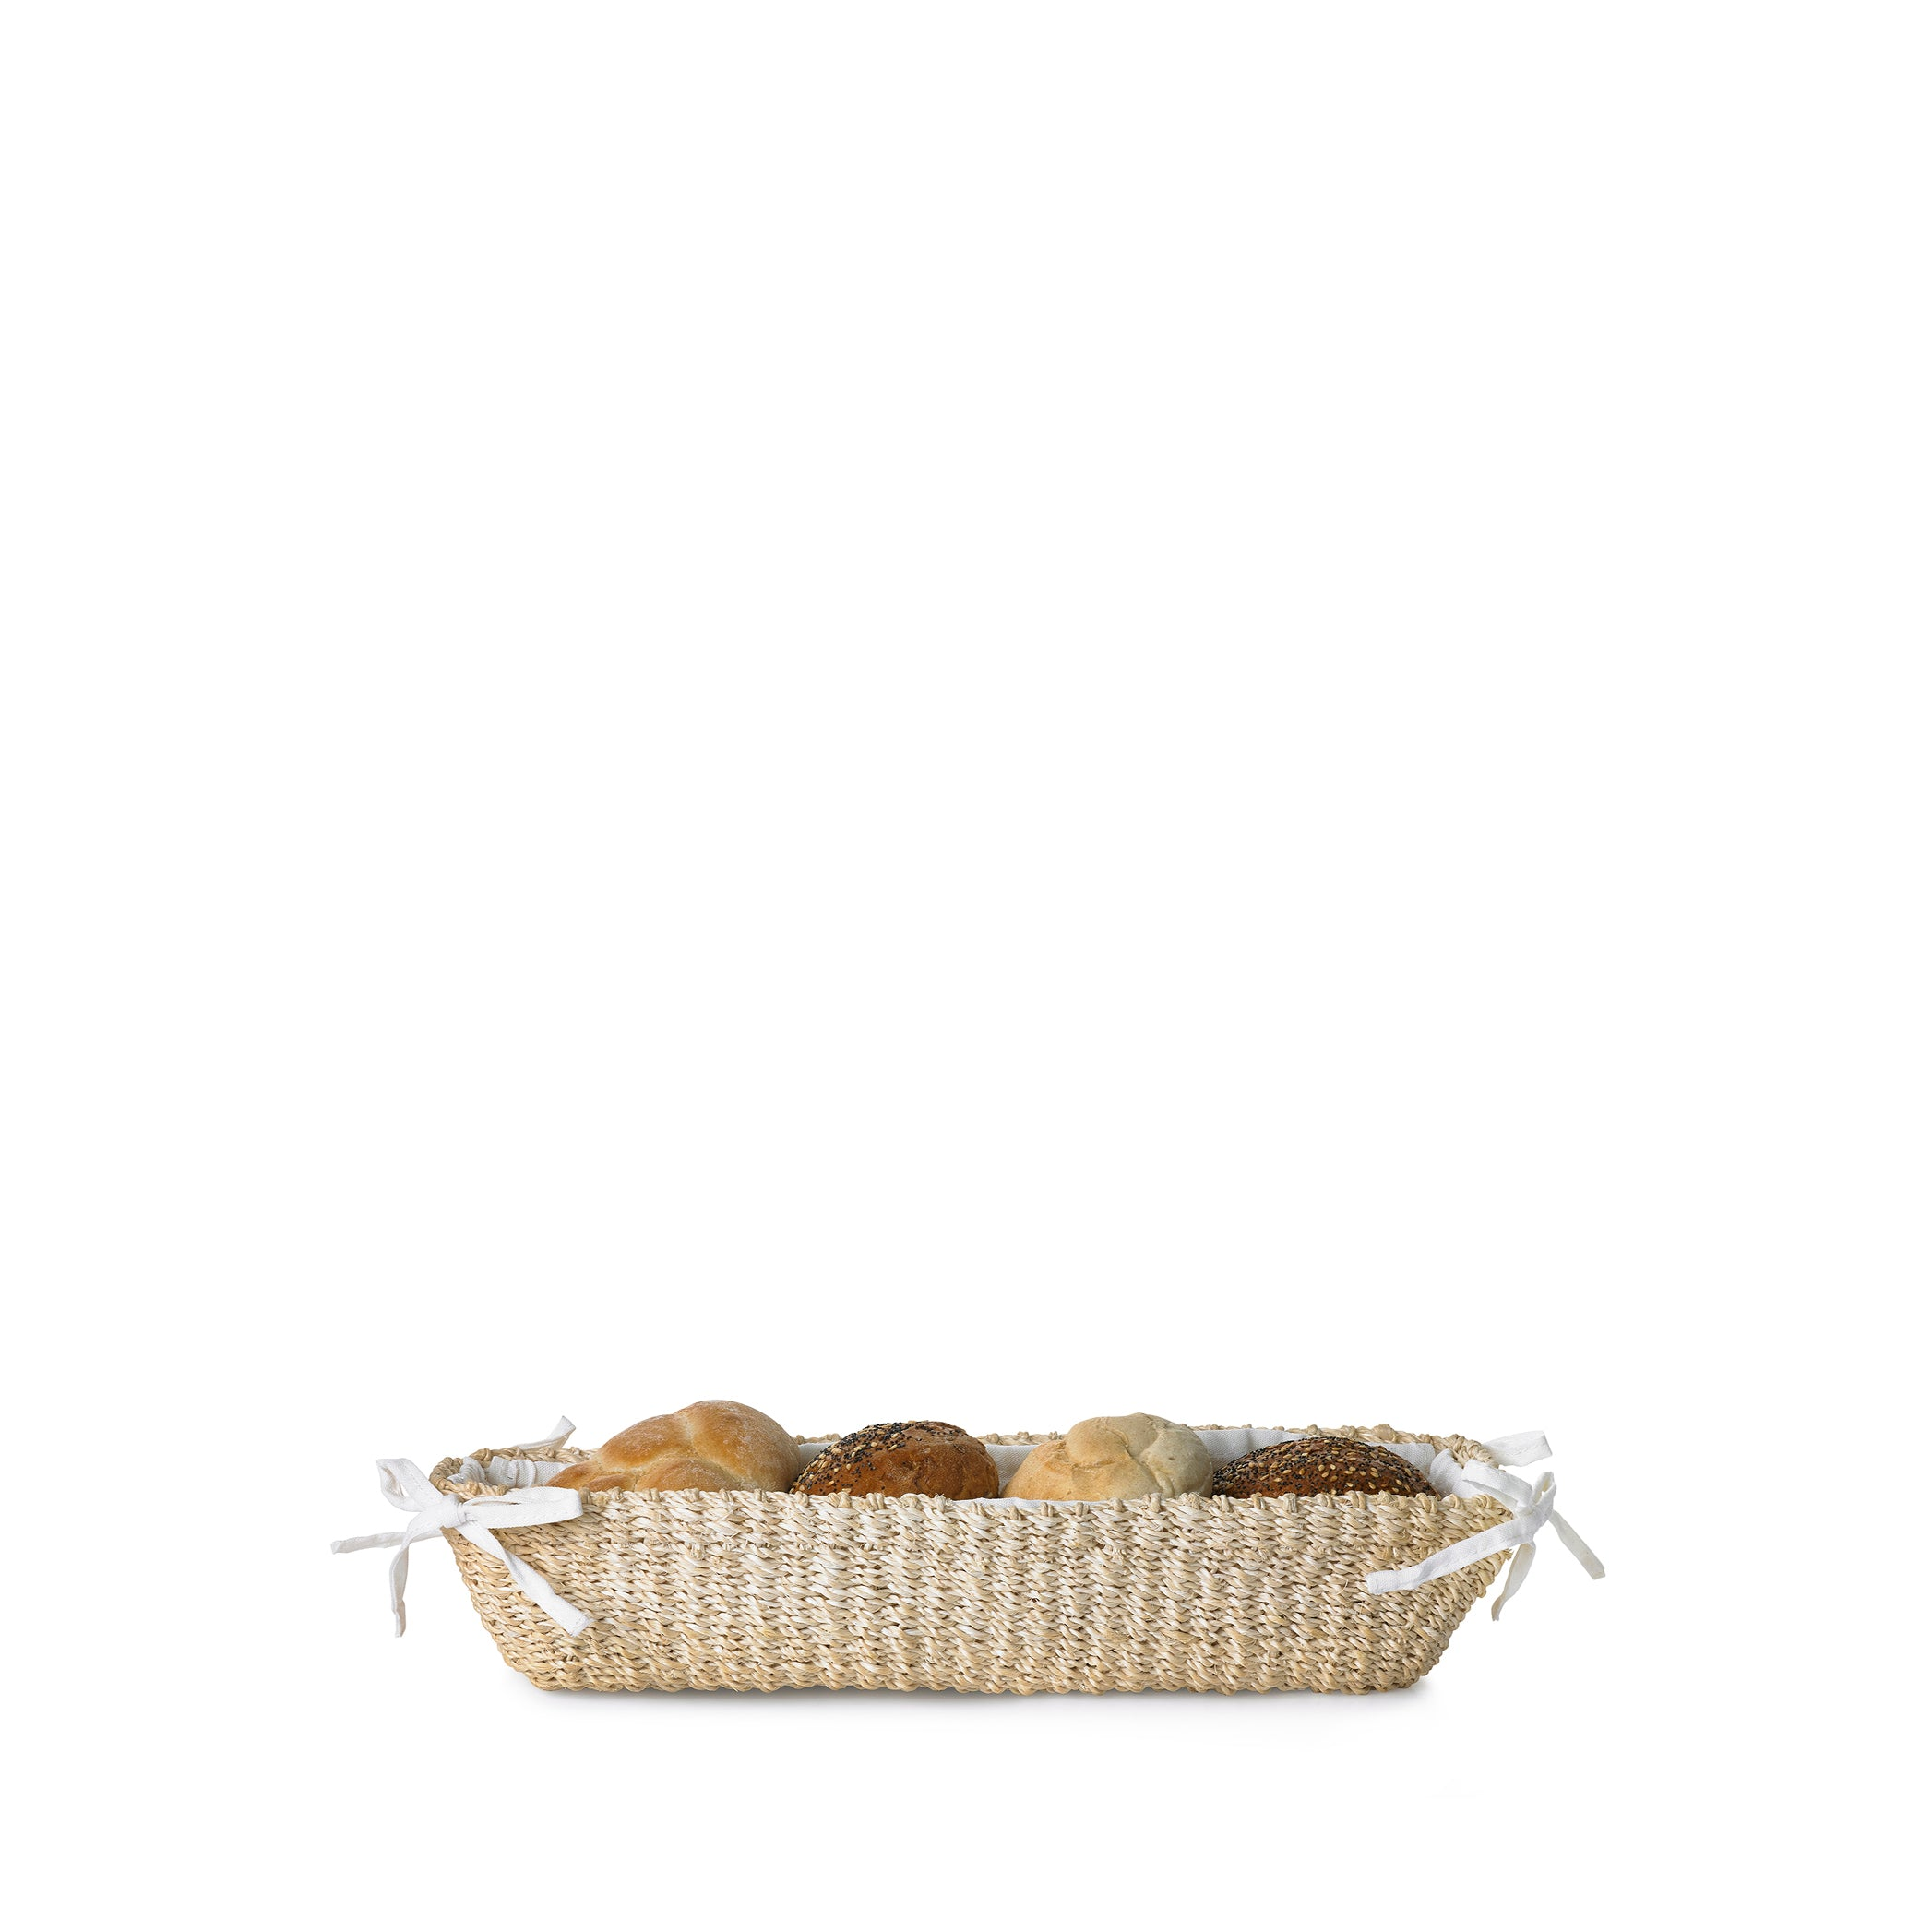 Abaca Woven Bread Basket in Cream